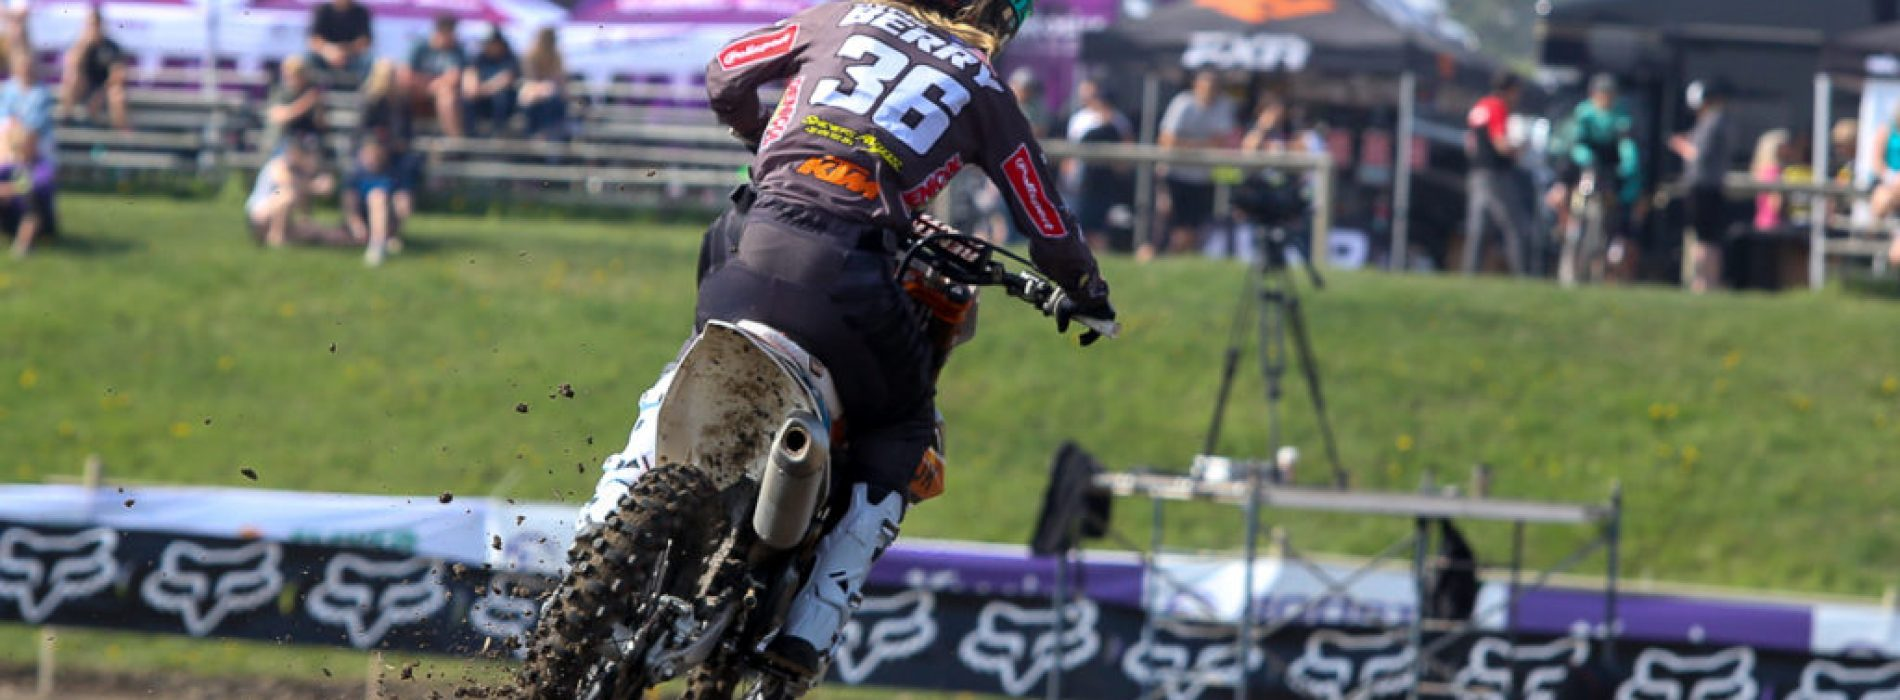 Avrie Berry- 3 Women MX Championships- 2 Titles in one year- congratulations!